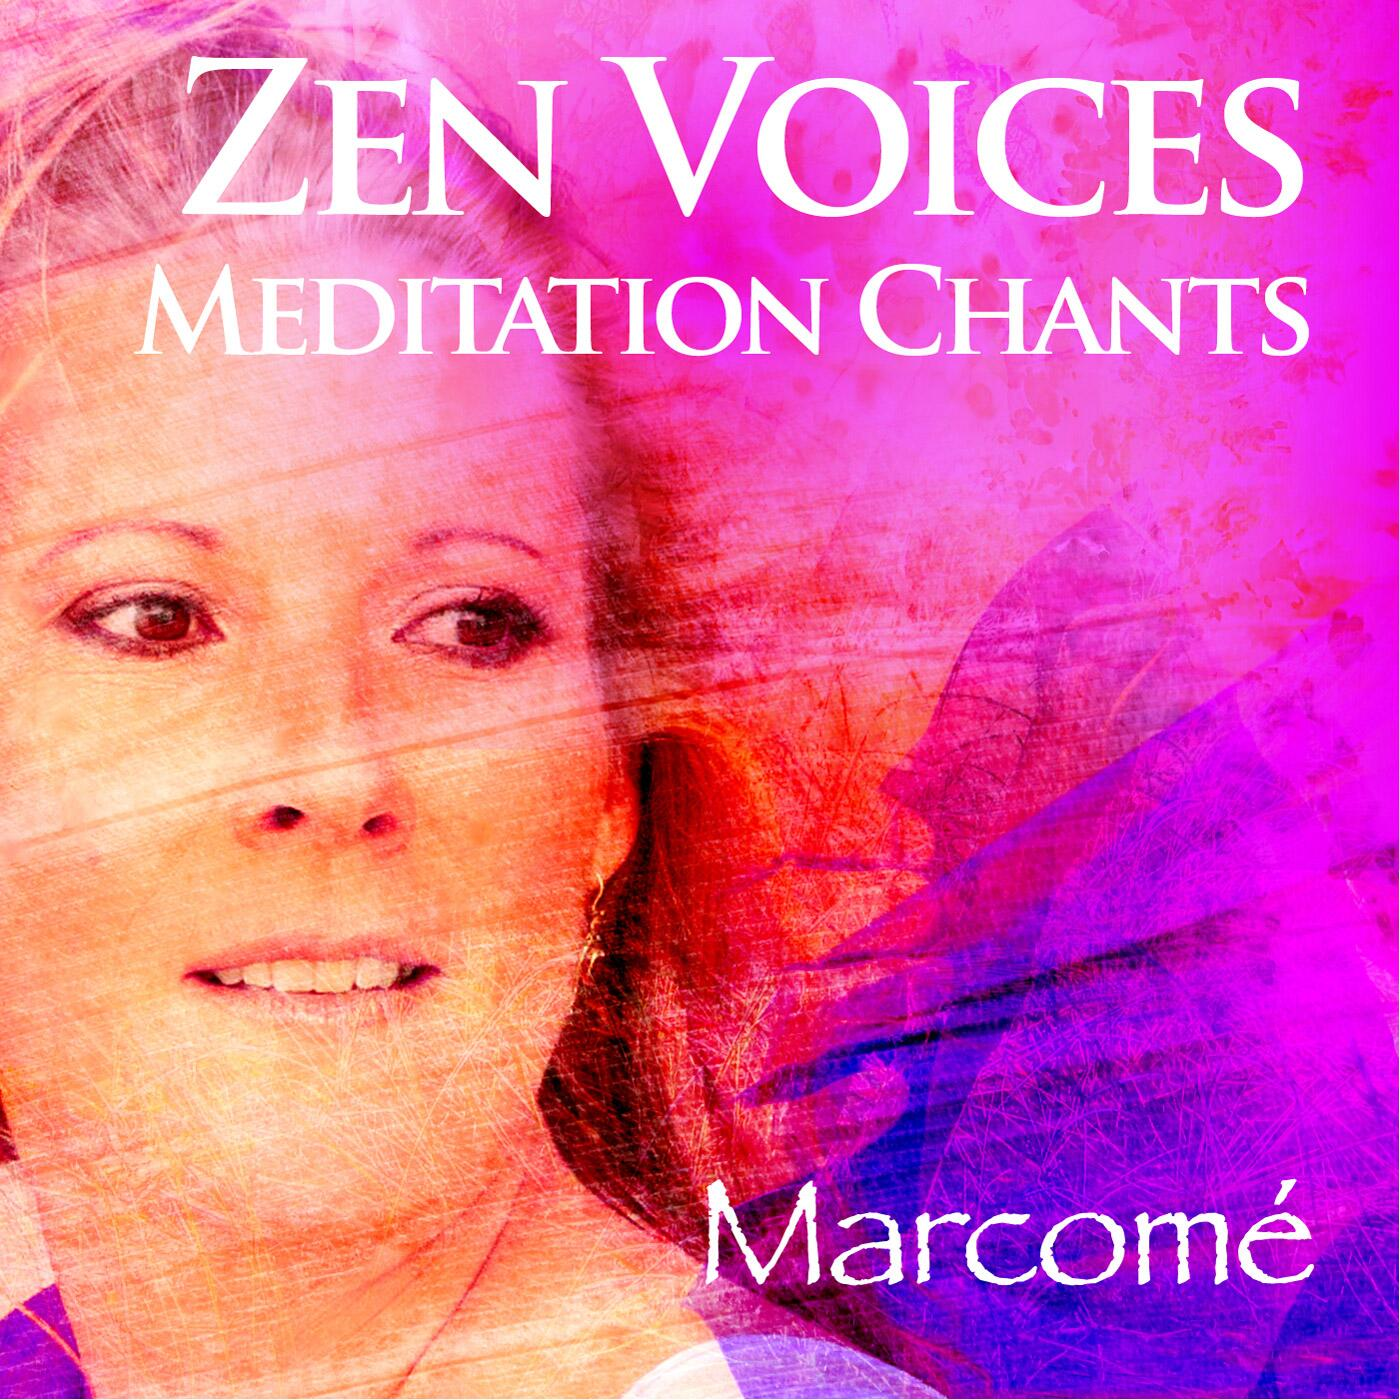 Twitter / Marcome: High quality new age music ...